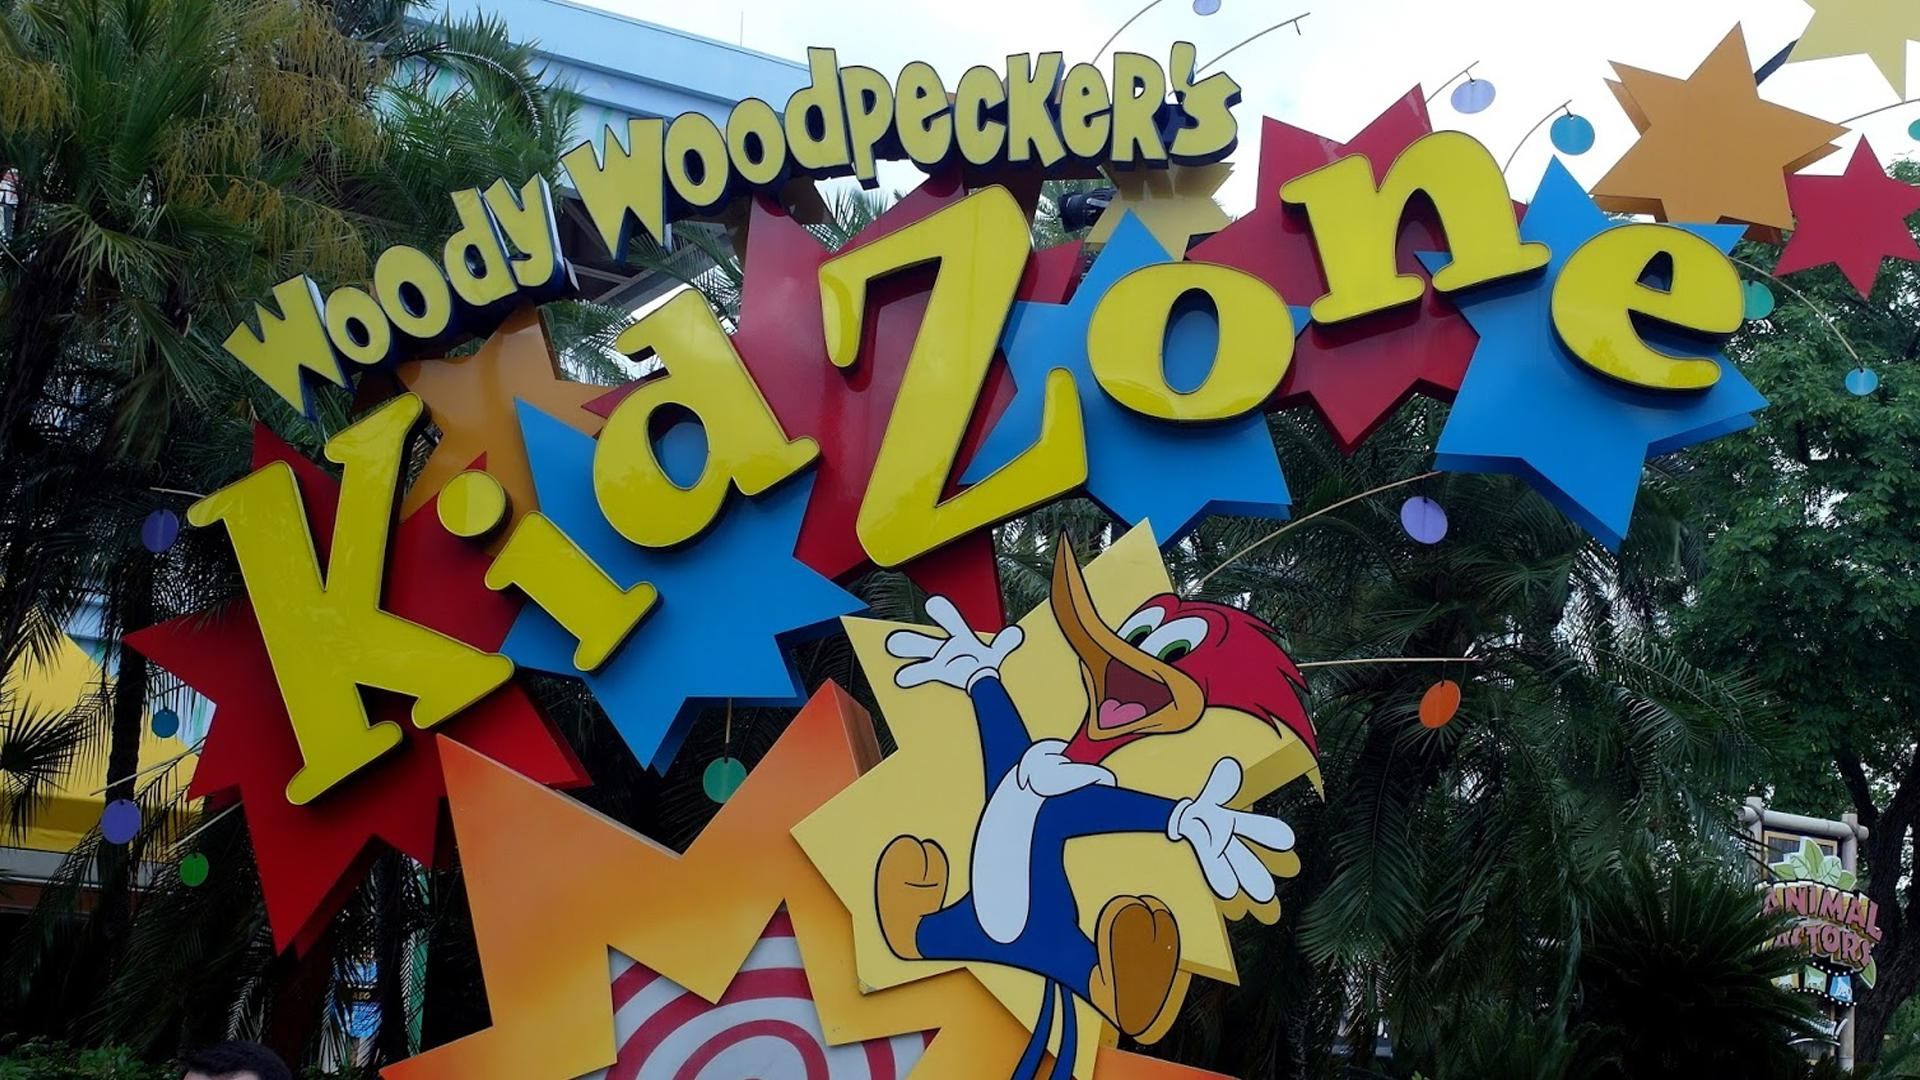 Woody Woodpecker S Kidzone Orlando Tickets Hotels Packages